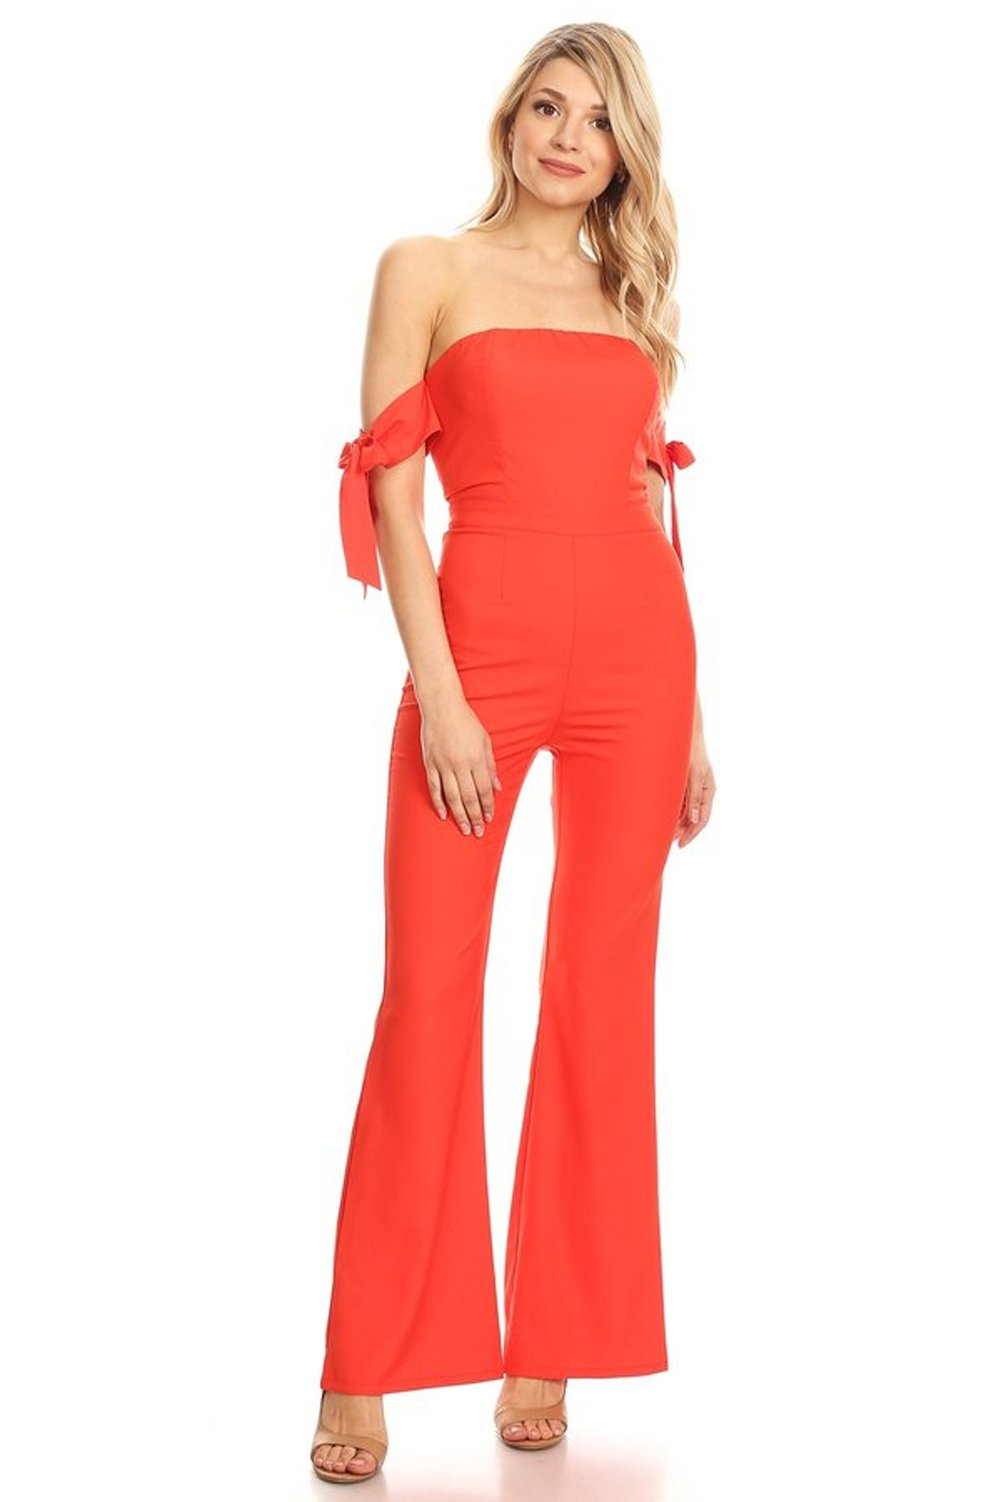 StyleEvery1 Women's Sexy Off Shoulder Bow Tie Sleeves Palazzo Pants Summer Casual Jumpsuits (Medium, Tomato red)